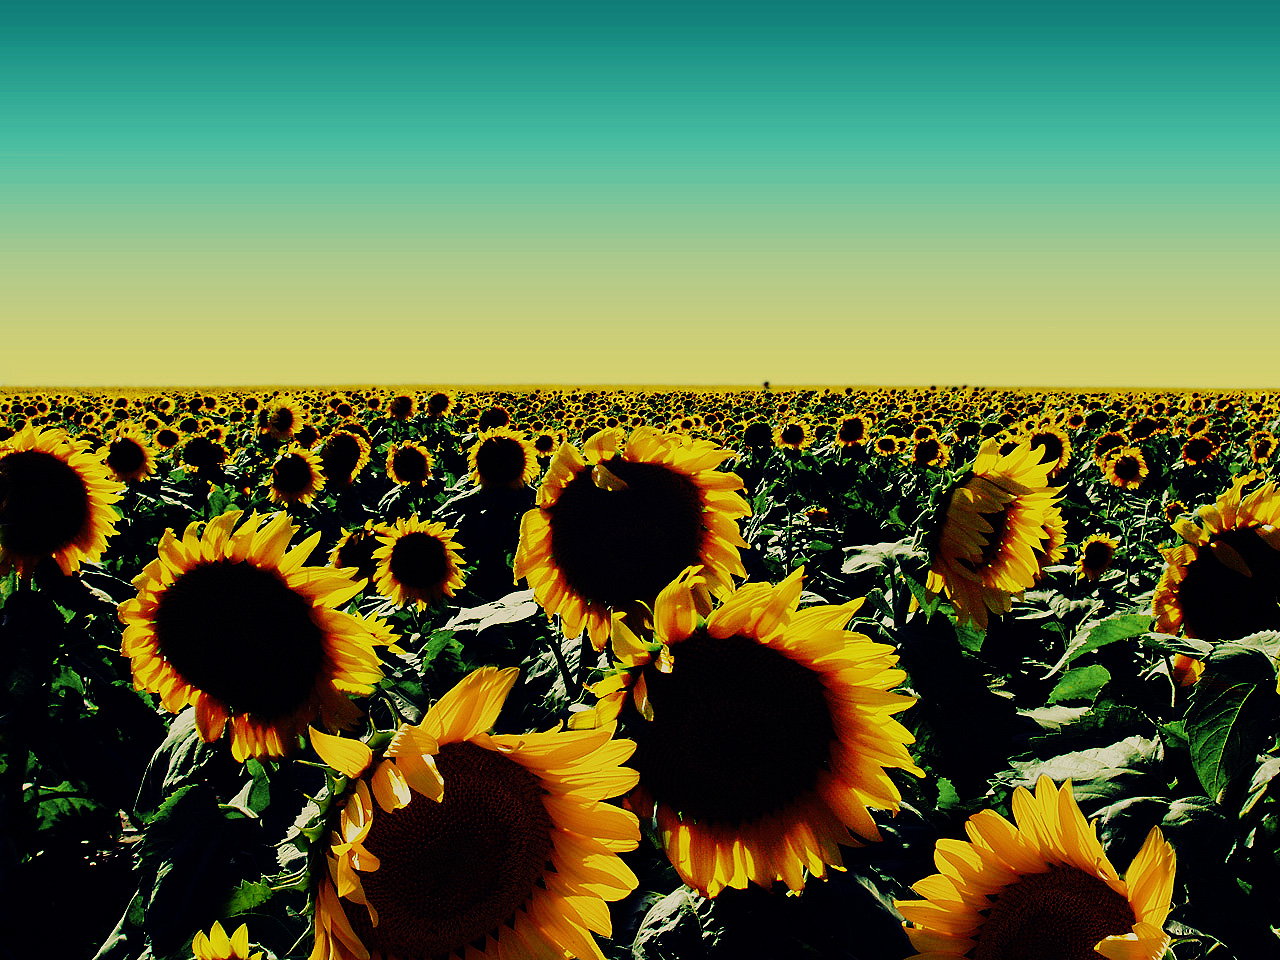 images of sunflower plants